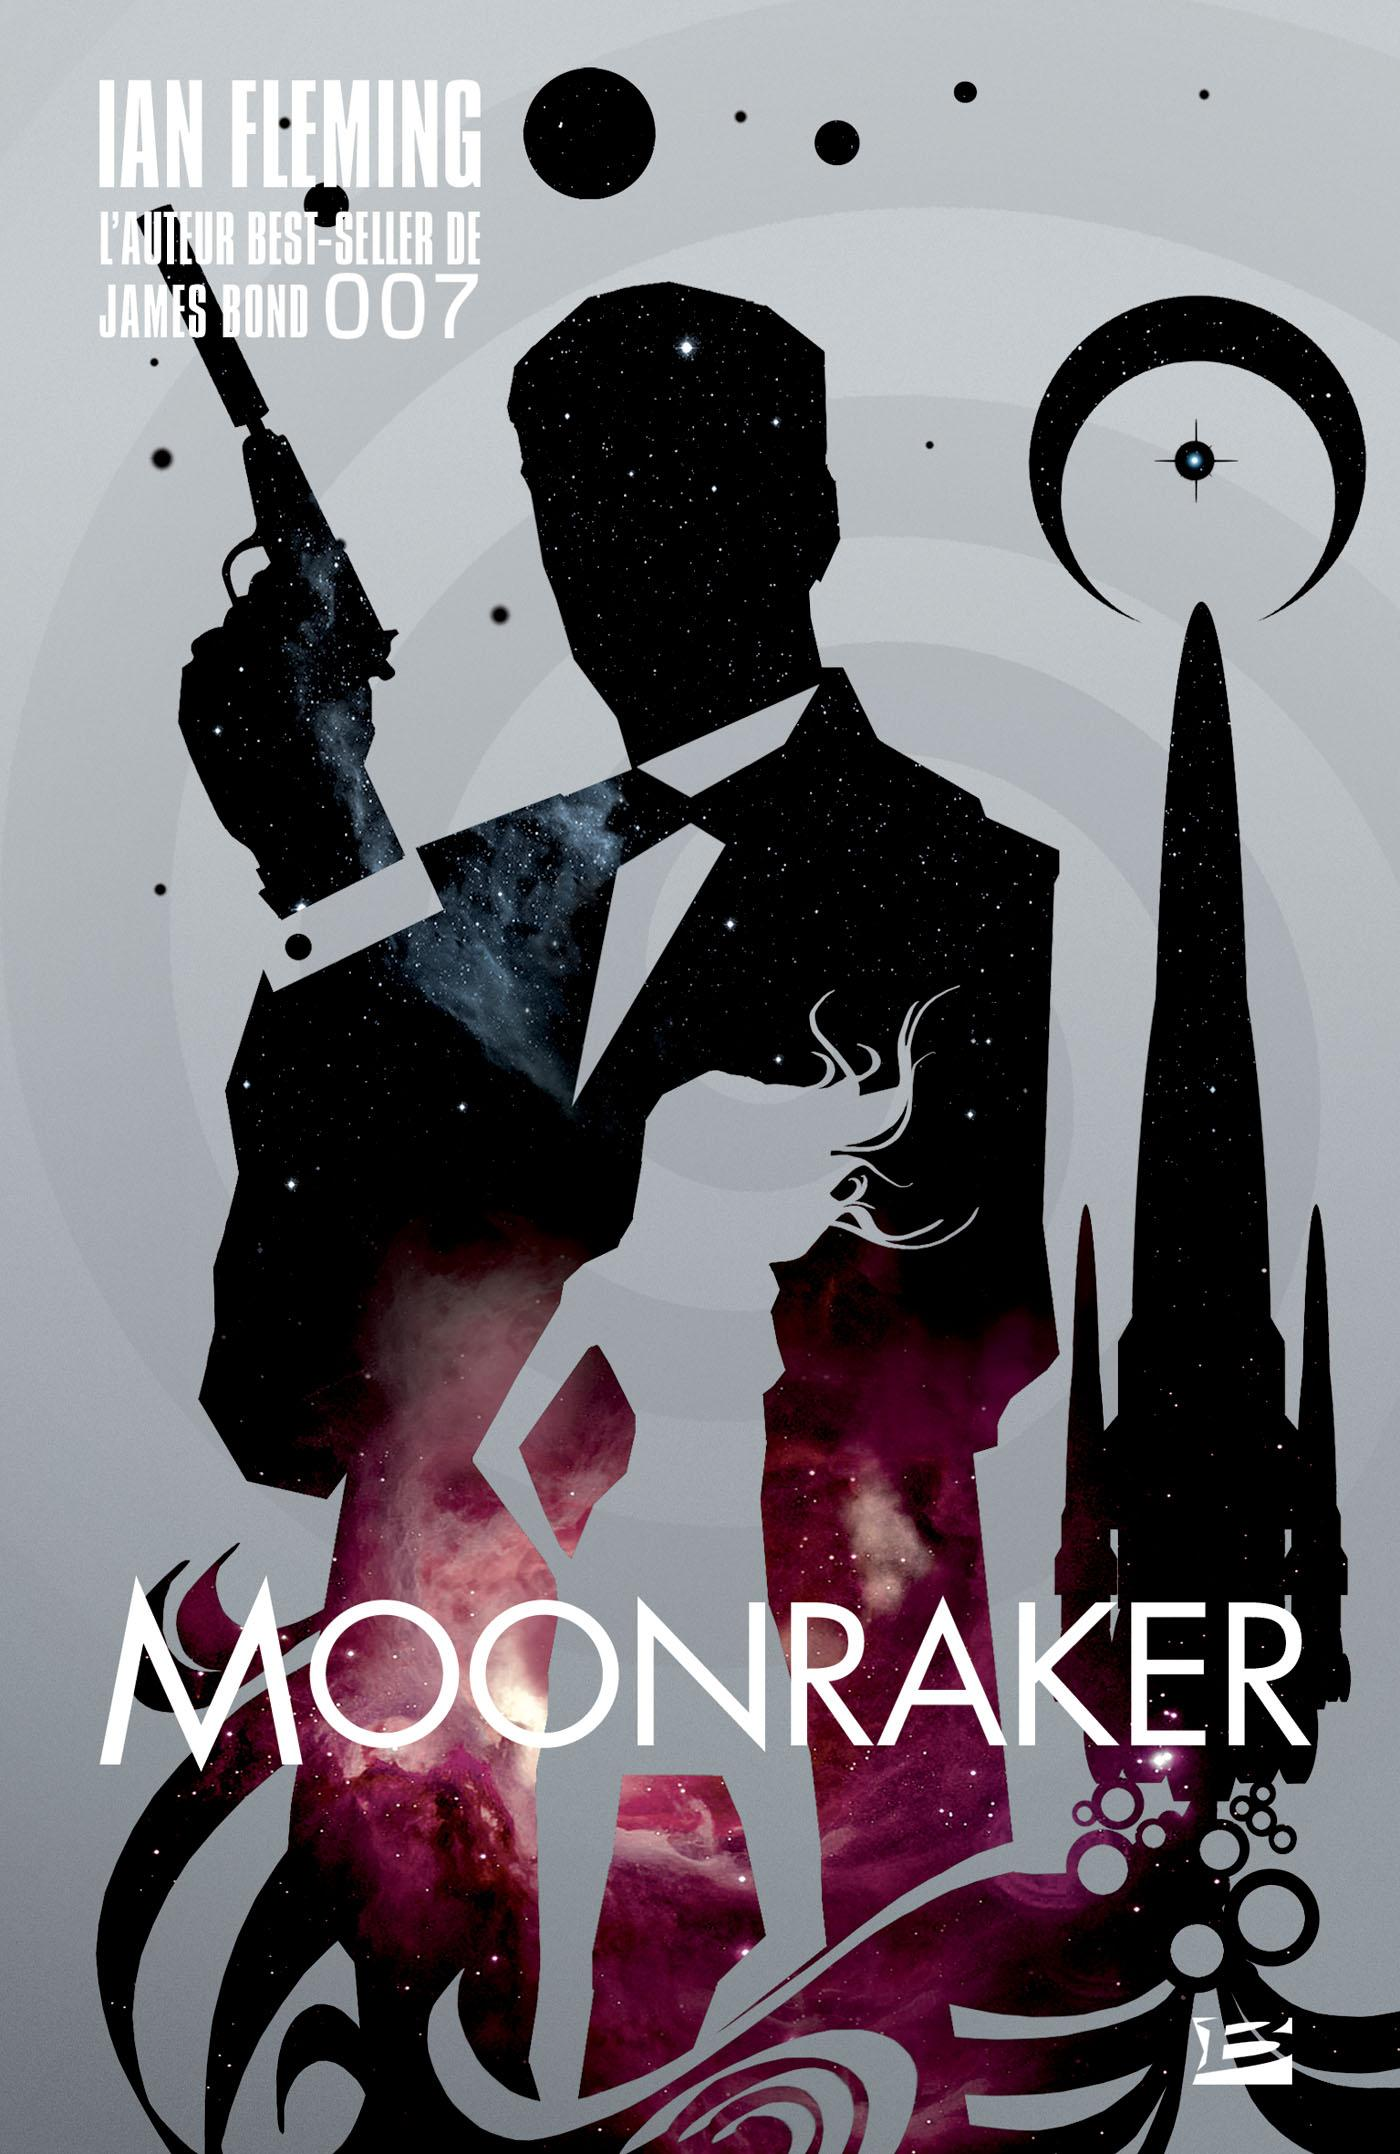 Moonraker, JAMES BOND 007